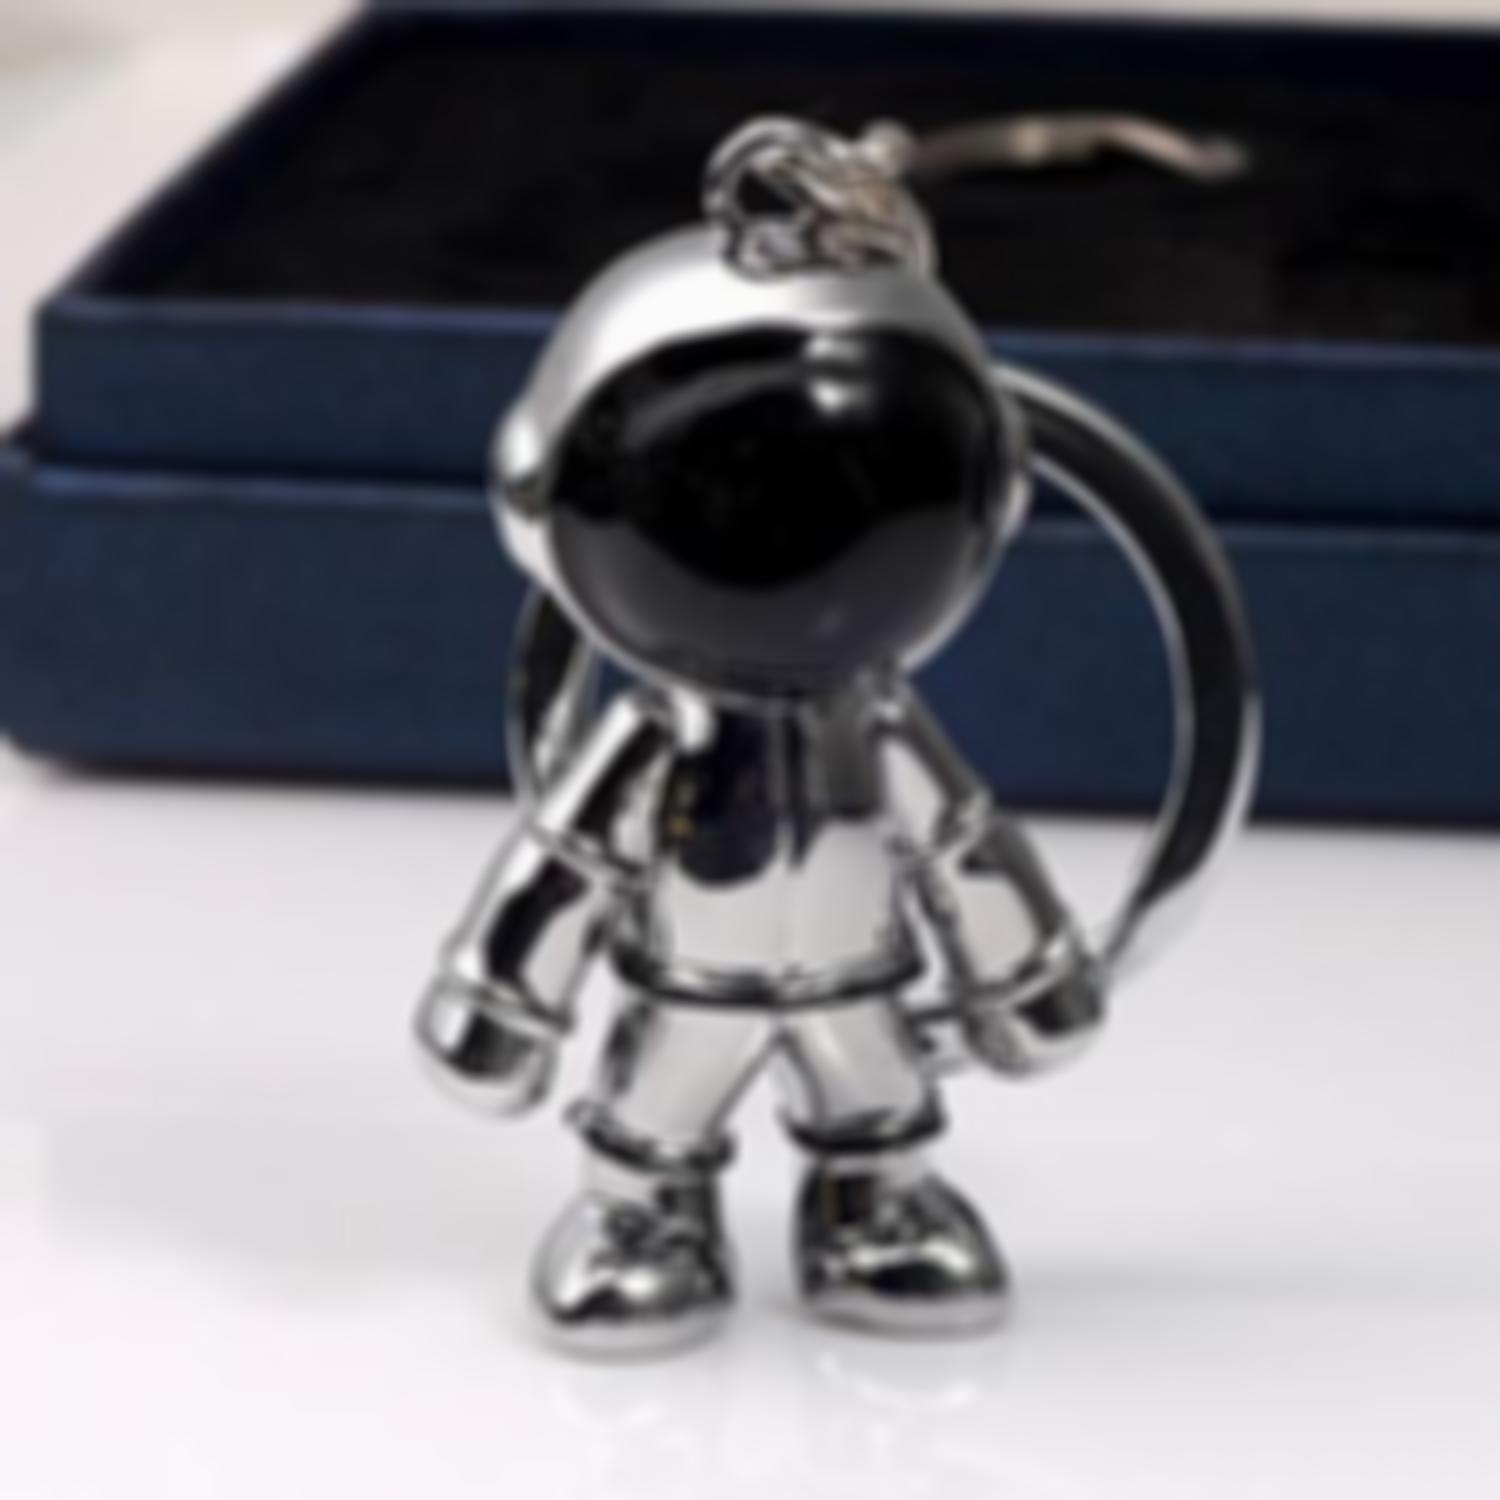 Lmfens--The Astronauts Metal Keychains